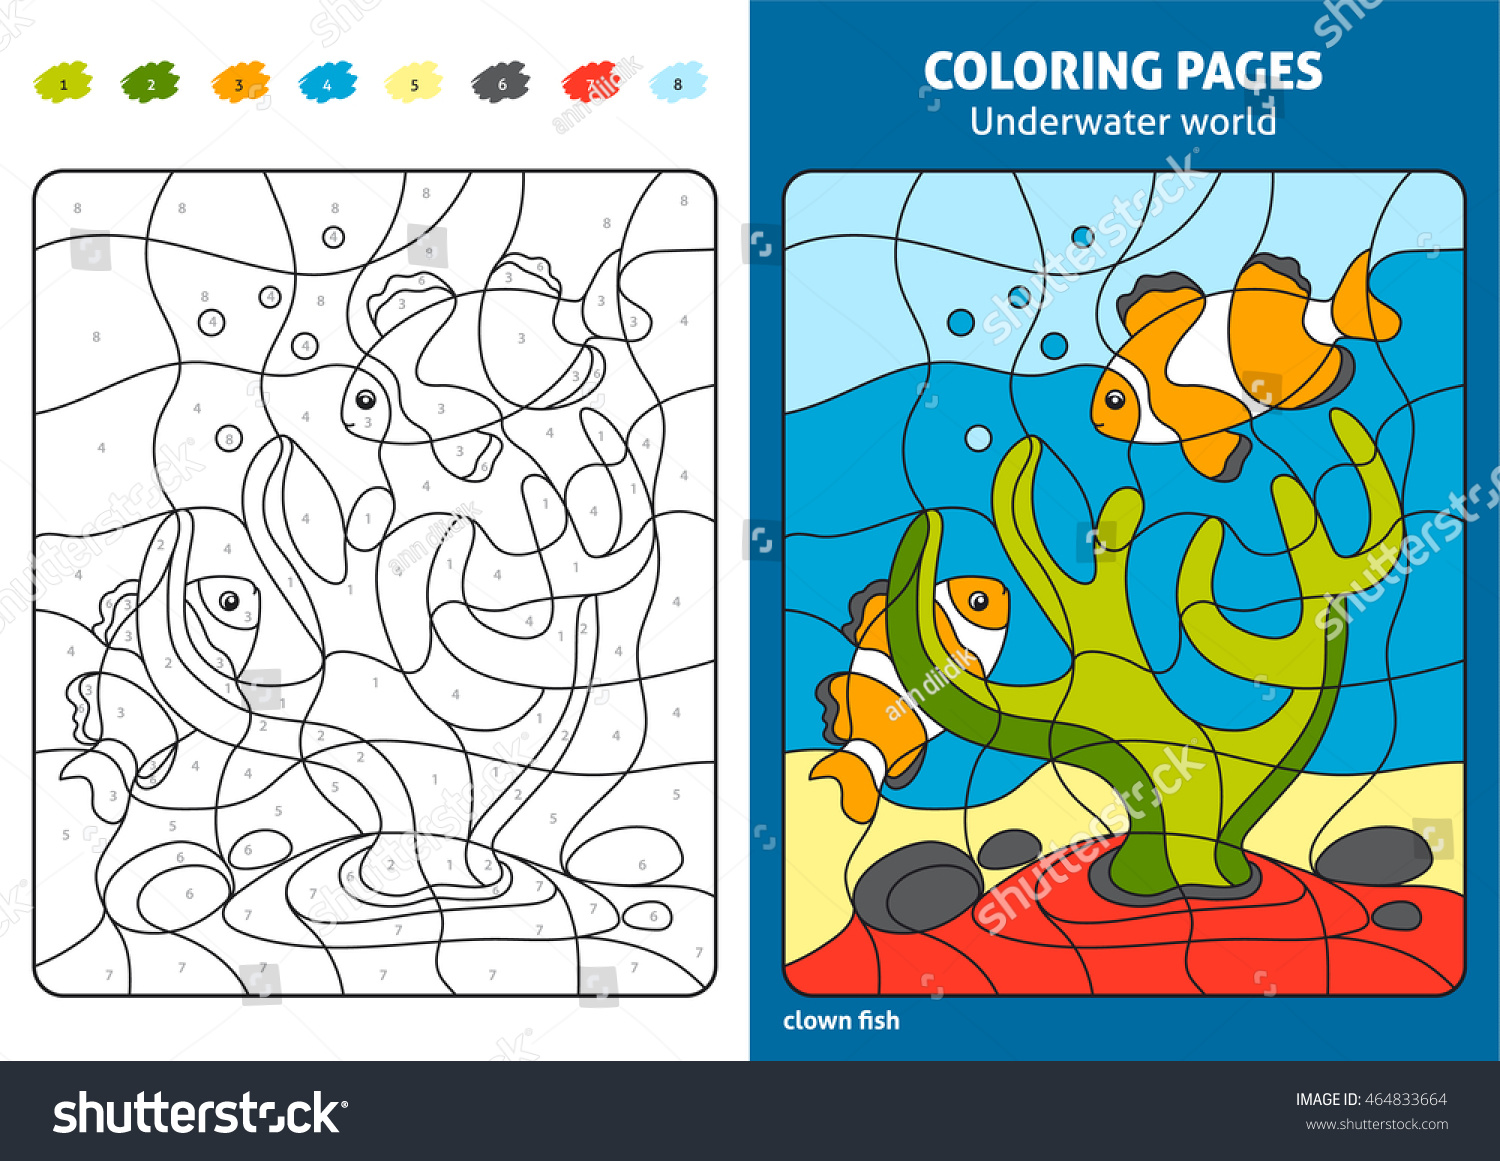 Underwater World Coloring Page Kids Reef Stock Vector (Royalty Free ...